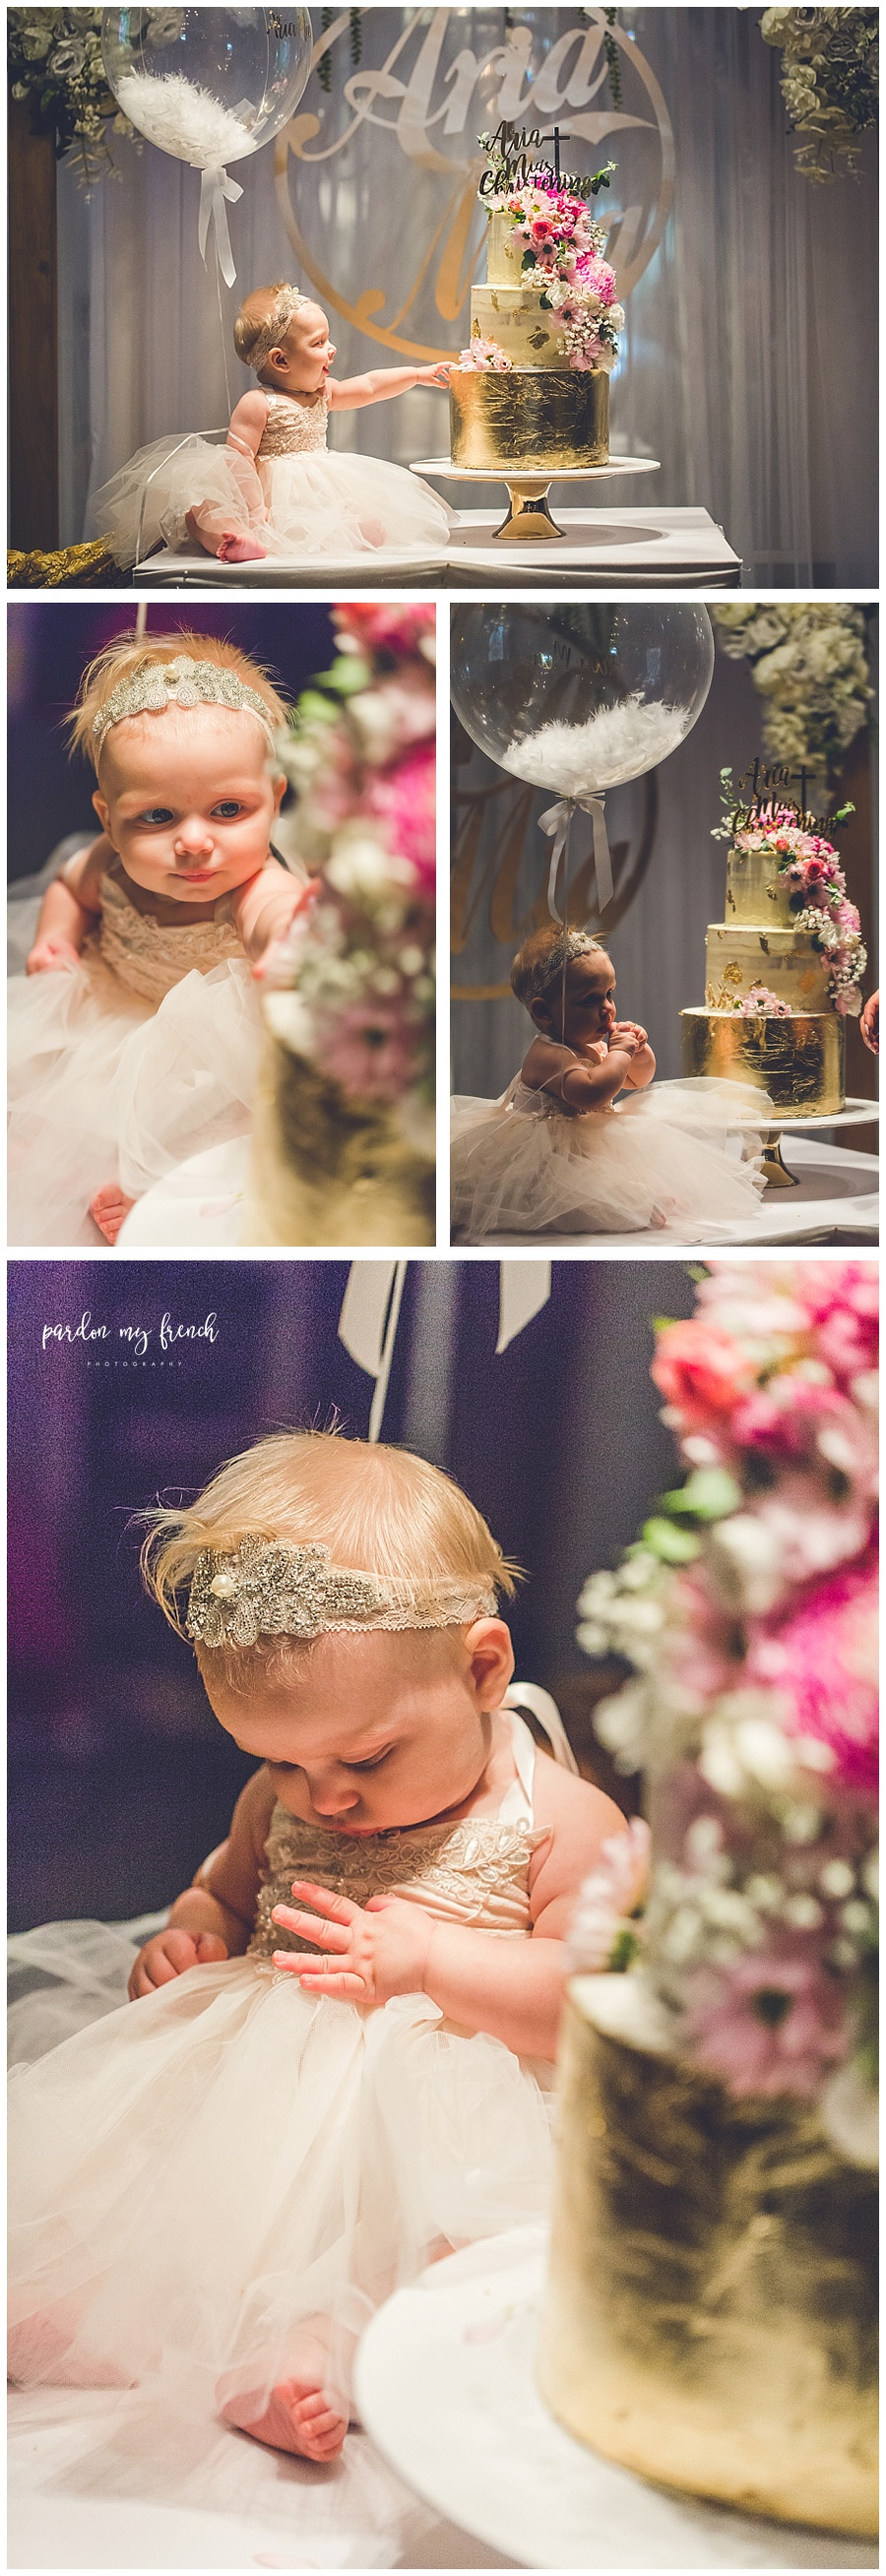 Adelaide Event Photographer copyright Pardon my French photography 49.jpg